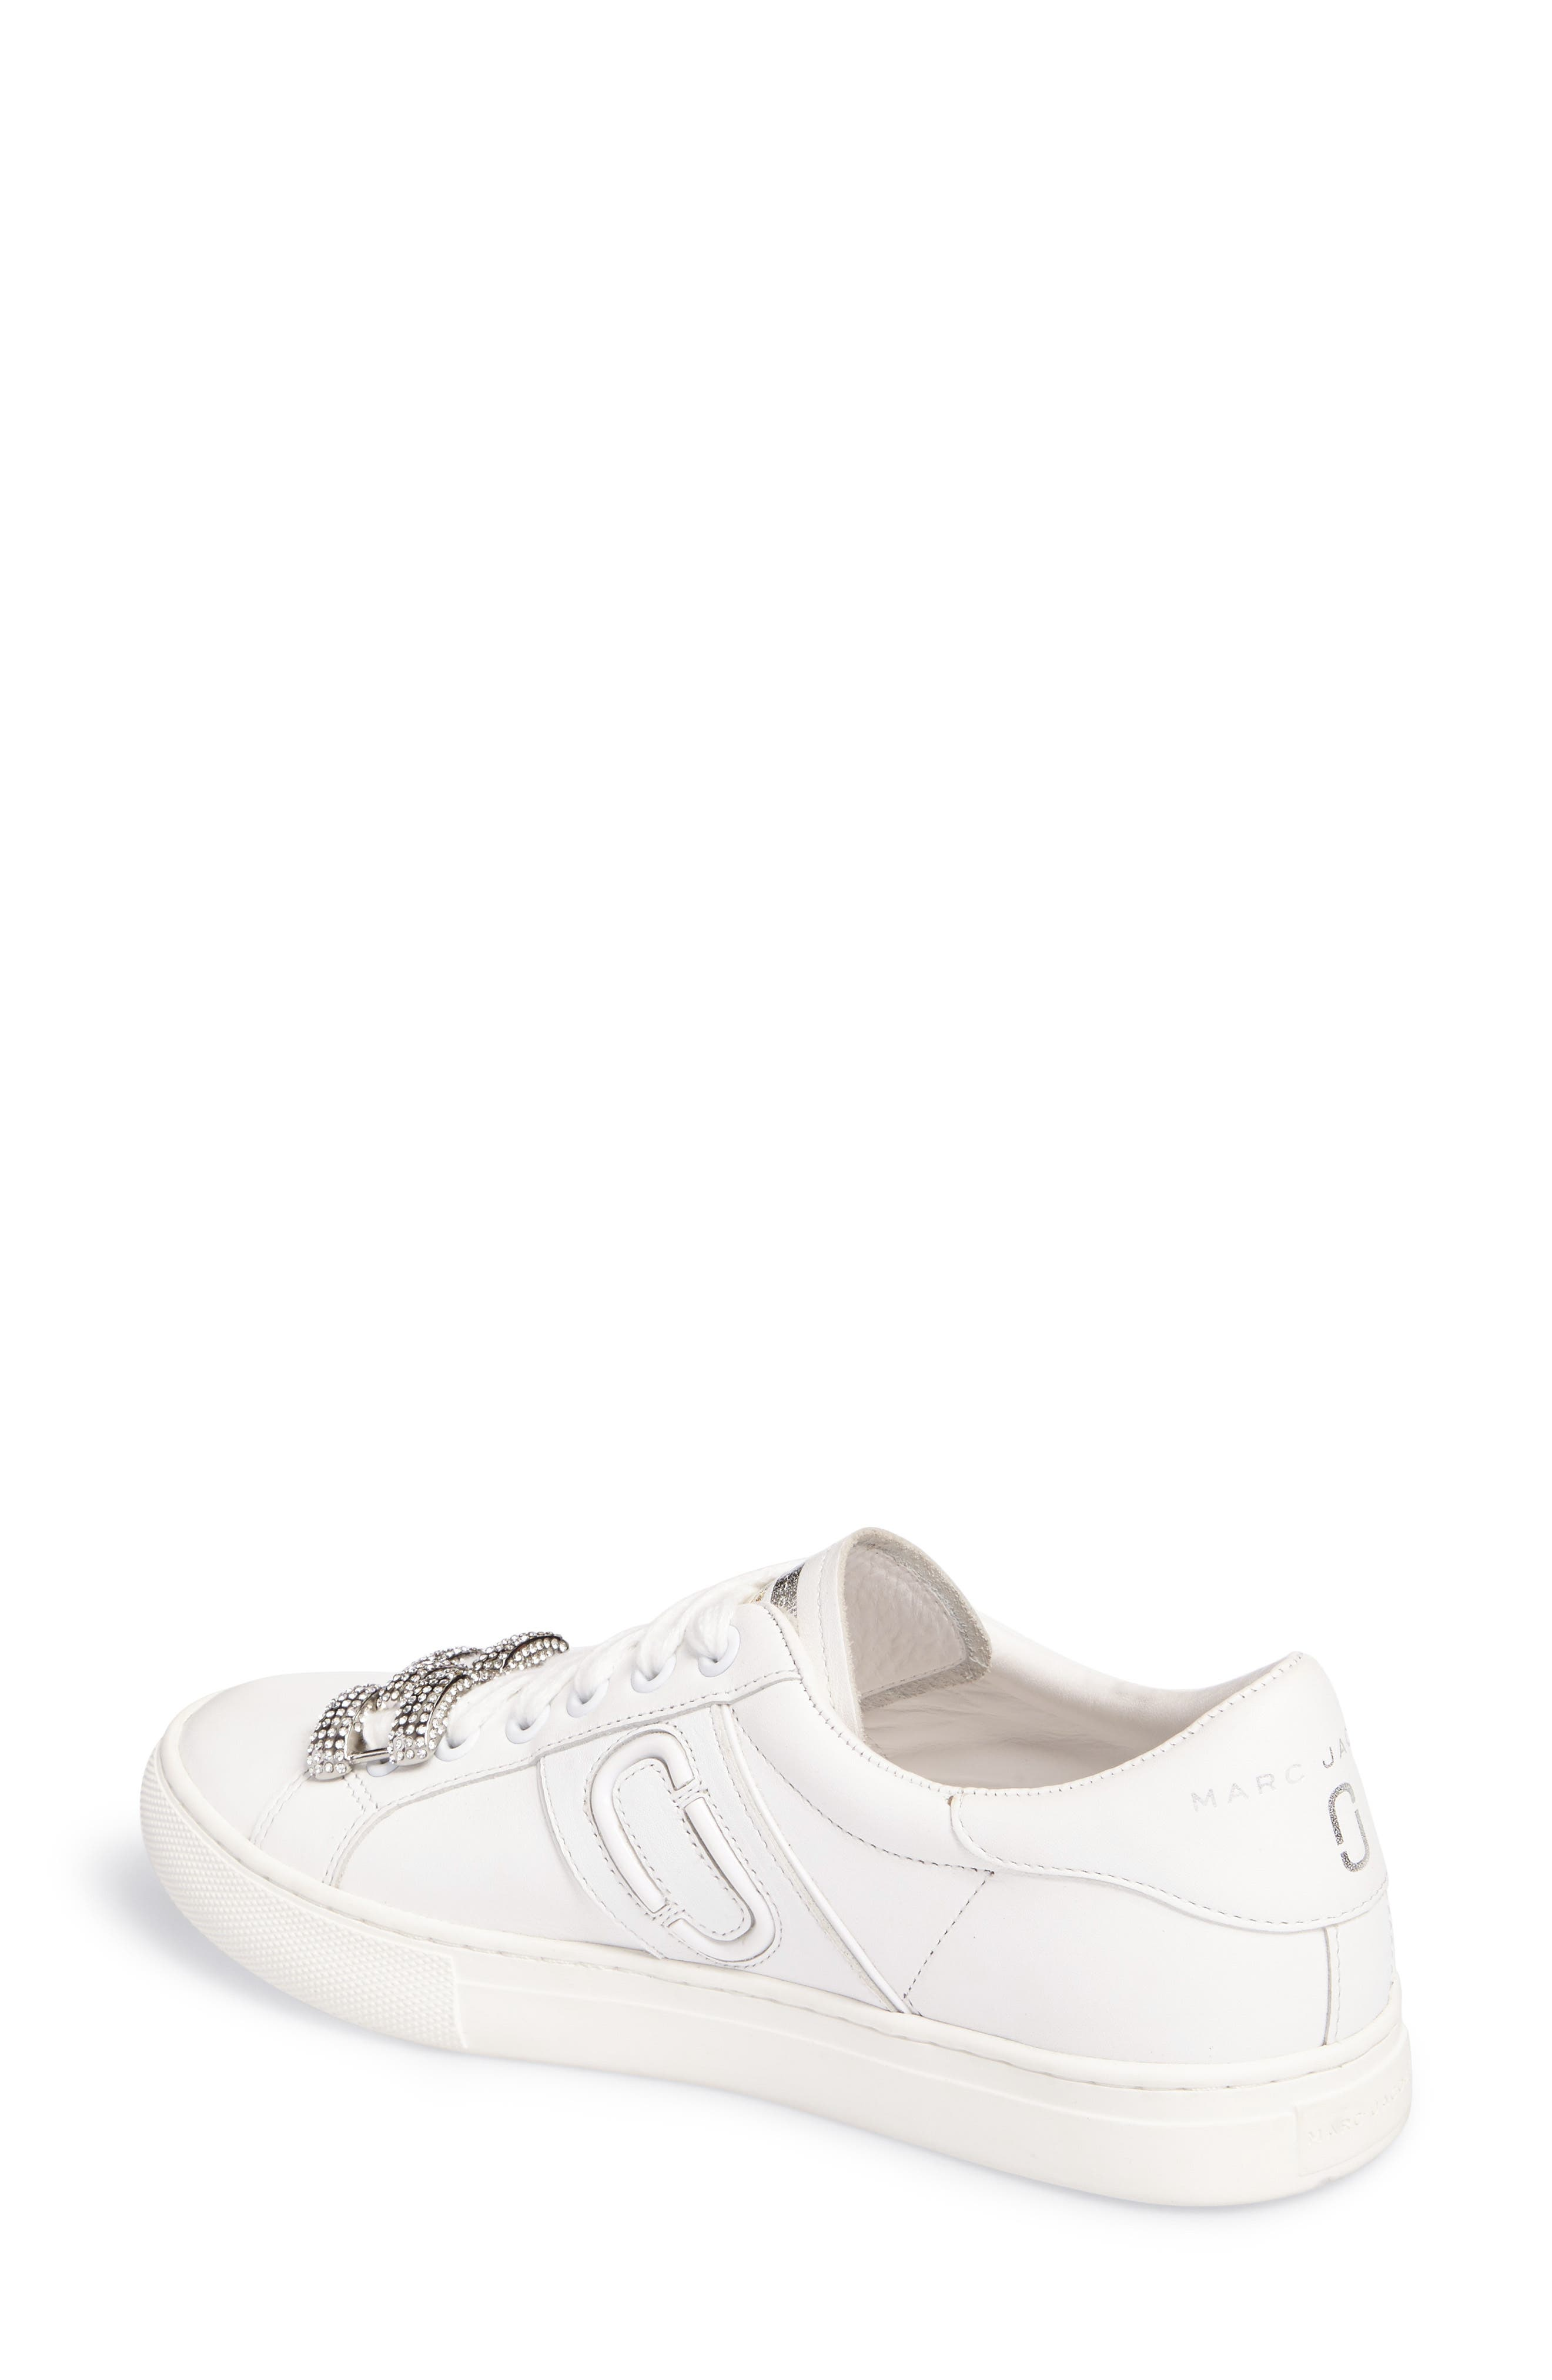 Alternate Image 2  - MARC JACOBS Empire Chain Link Sneaker (Women)